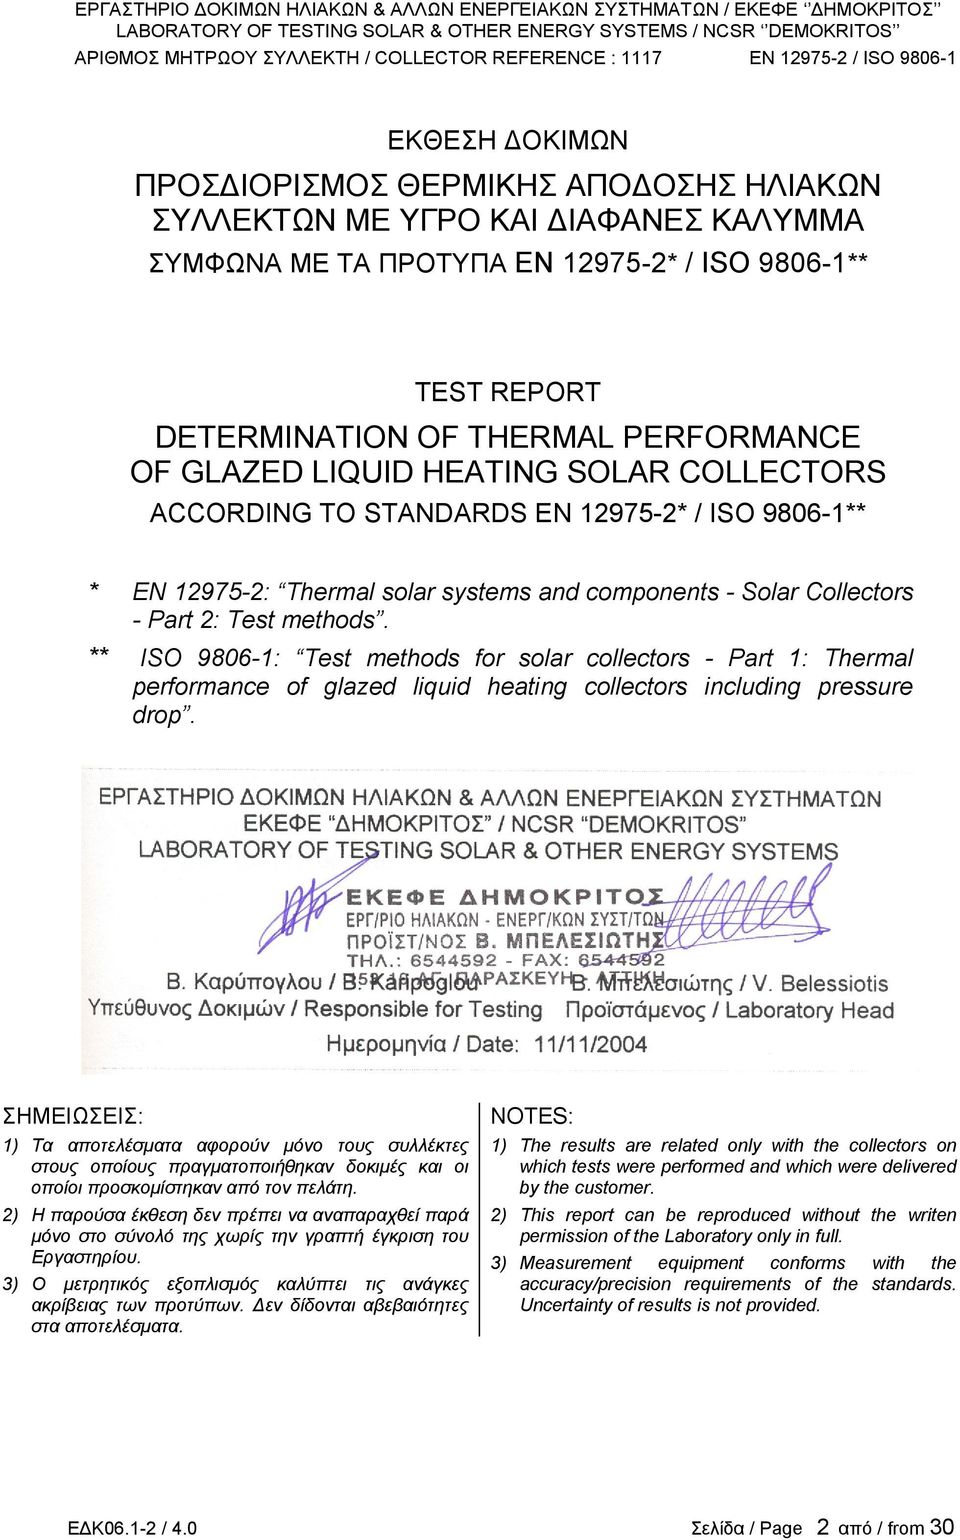 ** ISO 9806-1: Test methods for solar collectors - Part 1: Thermal performance of glazed liquid heating collectors including pressure drop.